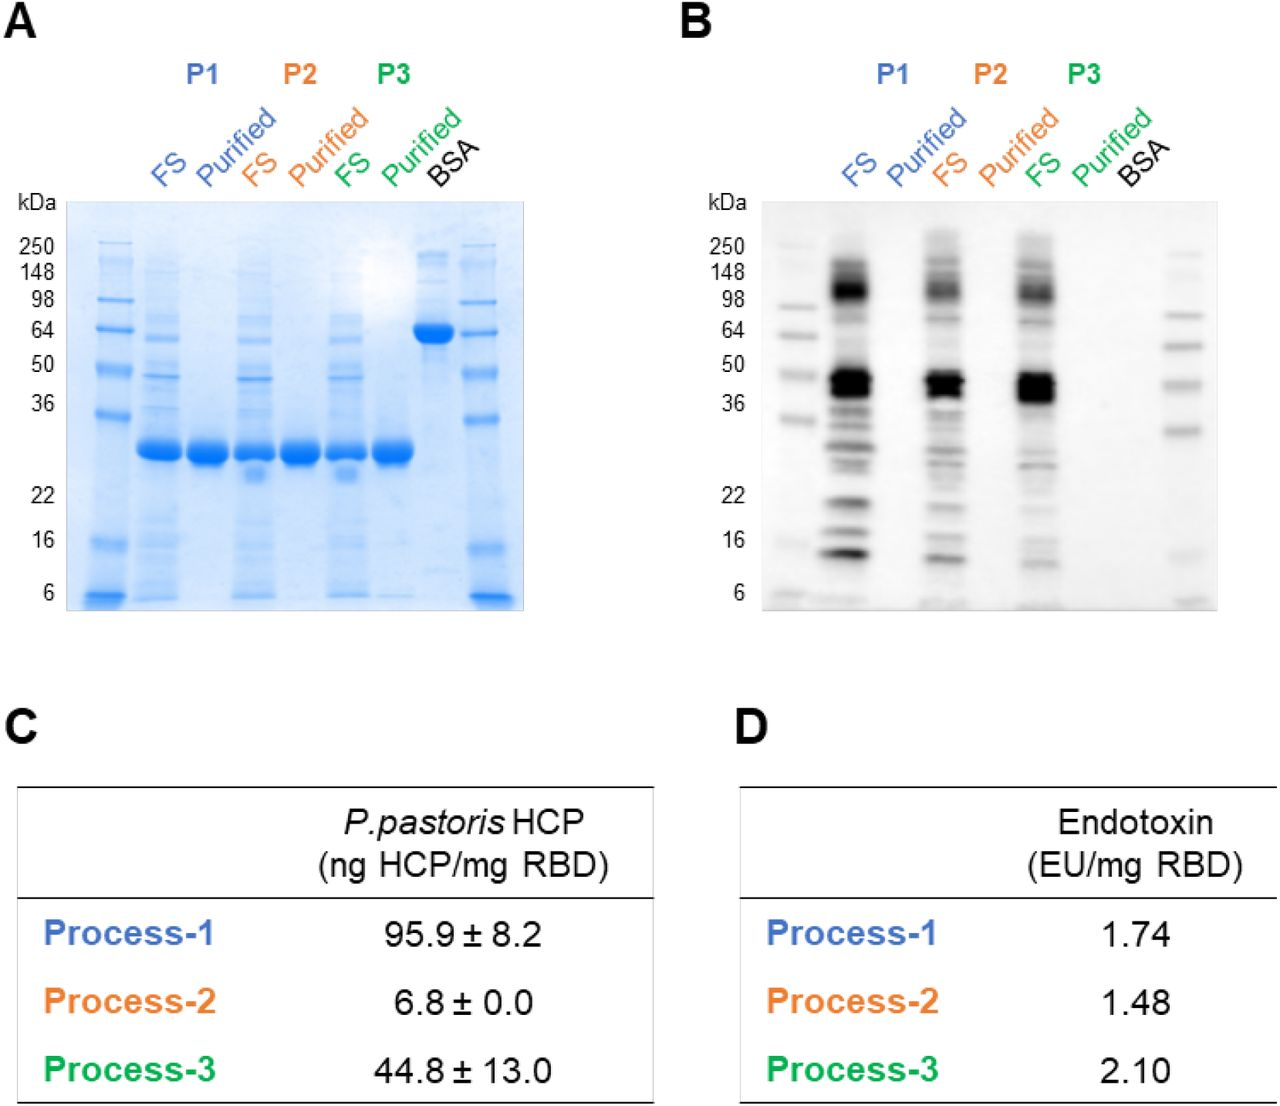 Impurity evaluation of the purified RBD219-N1C1 proteins from three processes. (A-B) Unpurified (FS) and purified RBD219-N1C1 in reduced SDS-PAGE with Coomassie Blue stain (A) and with Western blot using anti- P. pastoris HCP antibody (B). (C) Measured P. pastoris HCP content by quantitative ELISA and (D) endotoxin levels are shown.